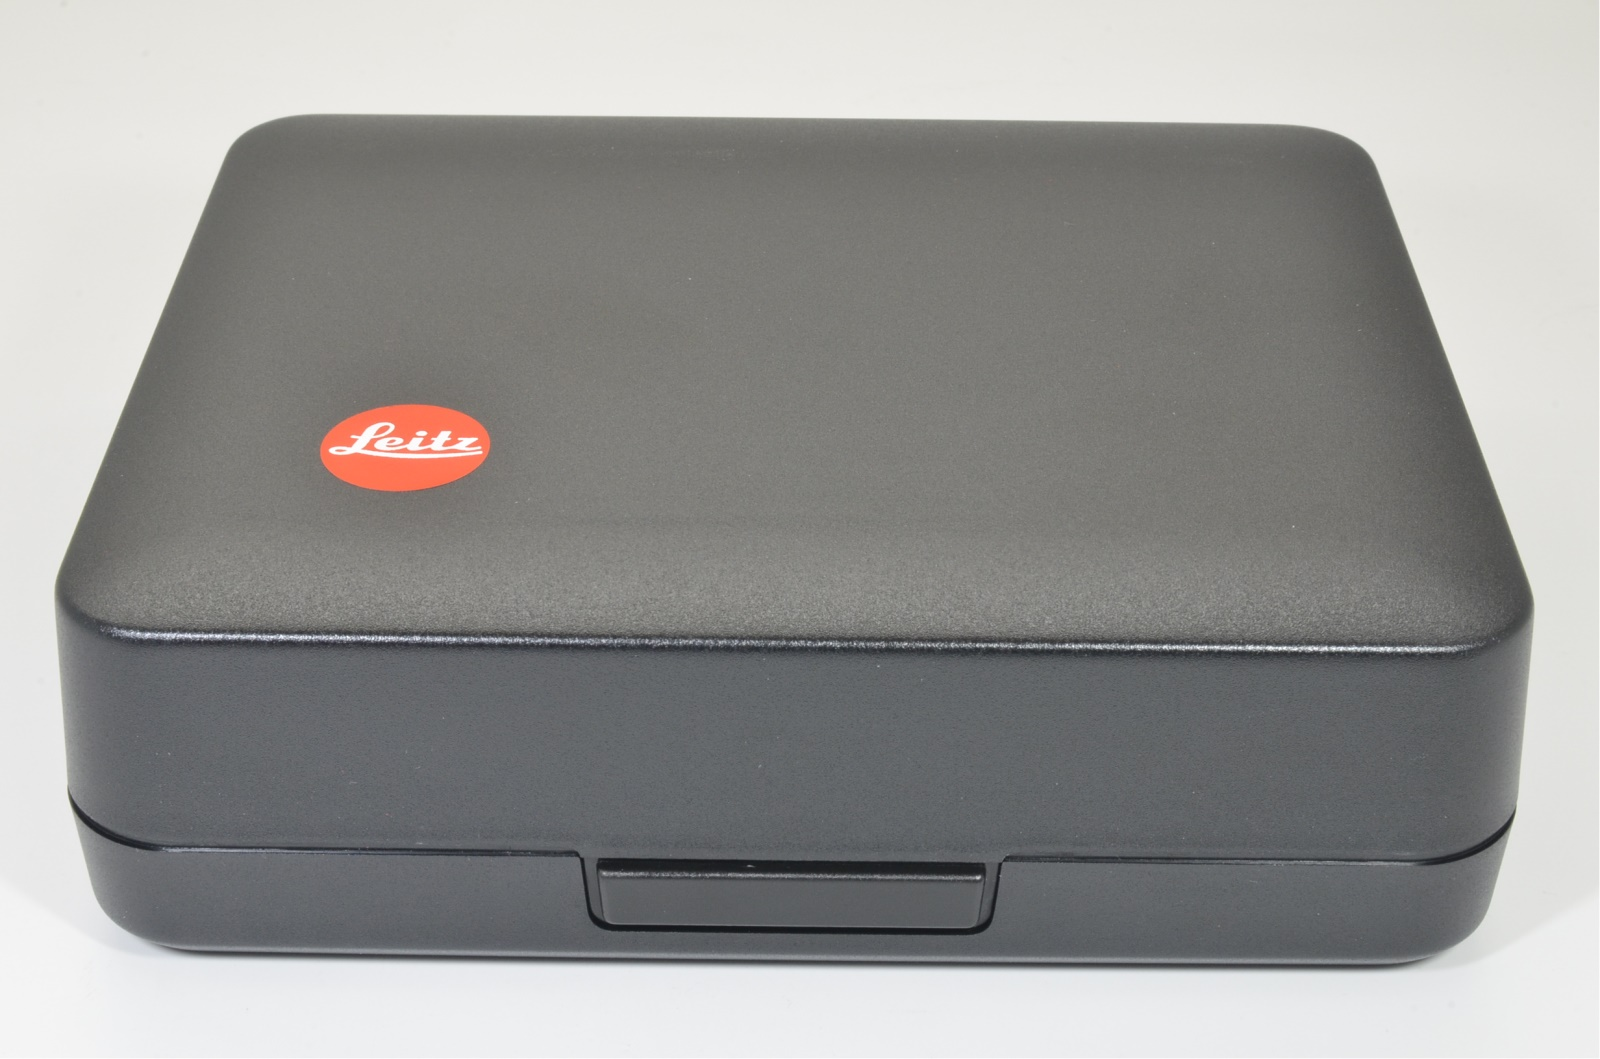 leica m6 empty box, plastic case, and english instructions from japan